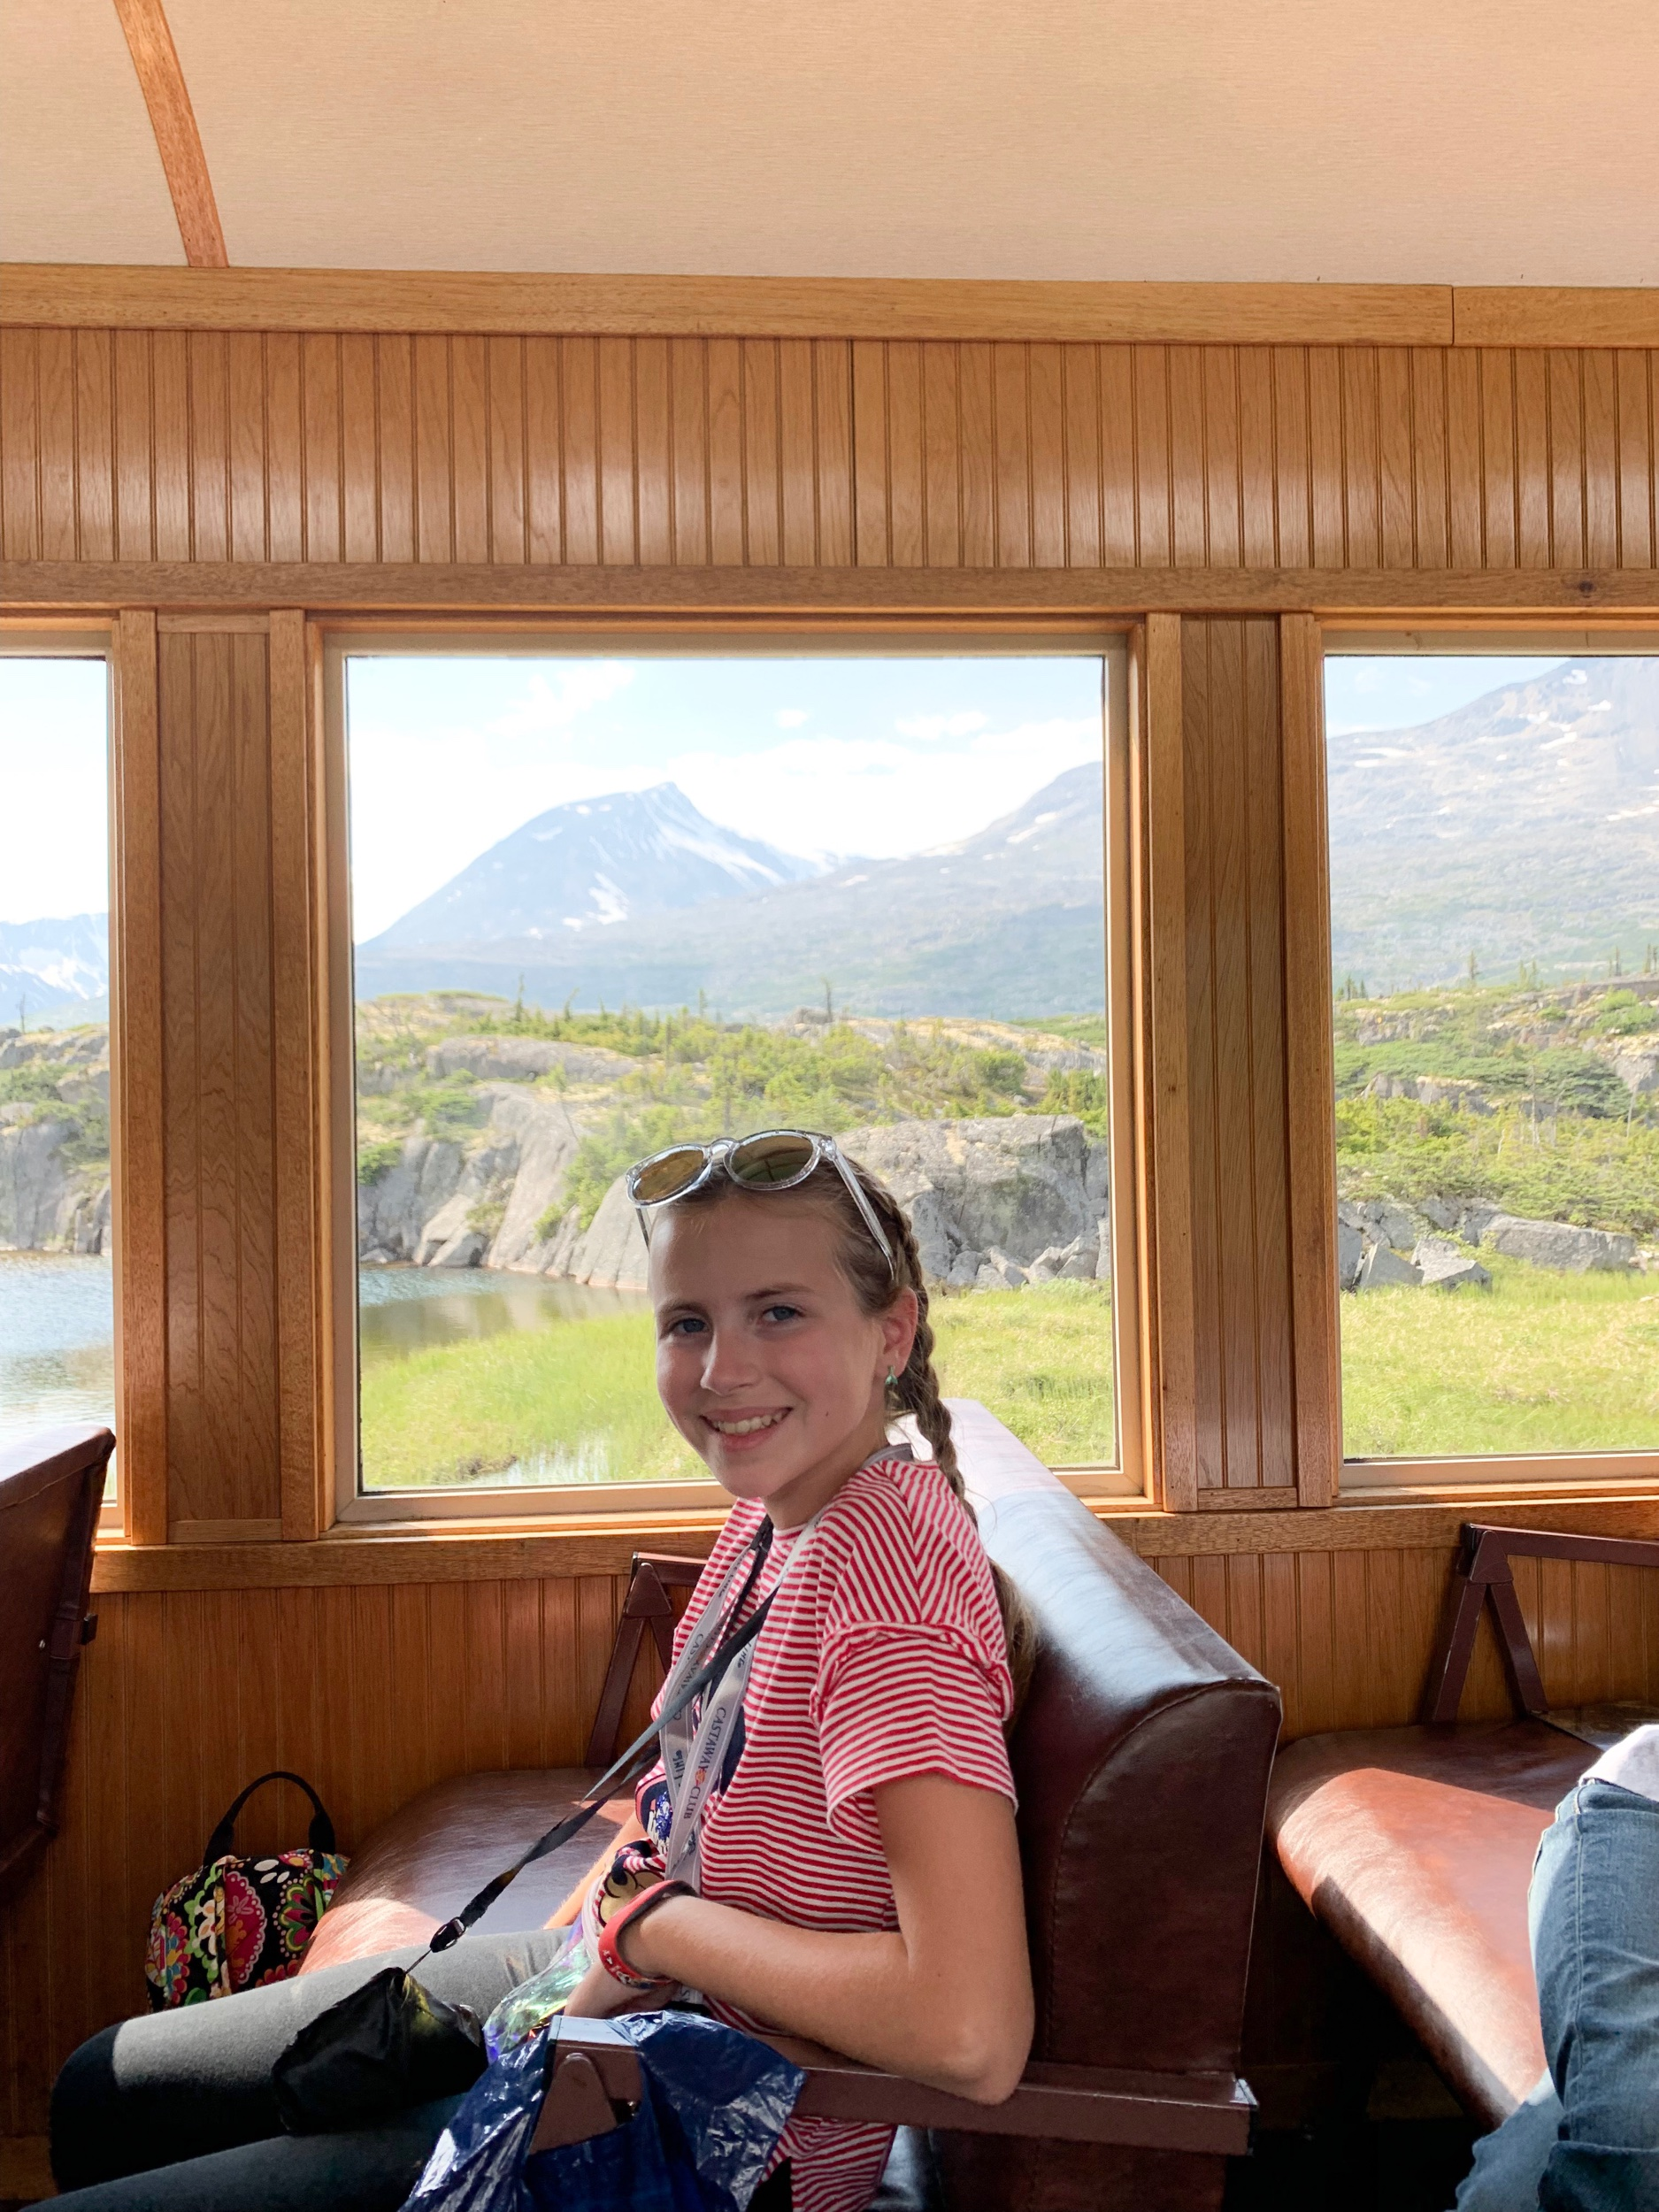 Riding on a train back to Skagway!